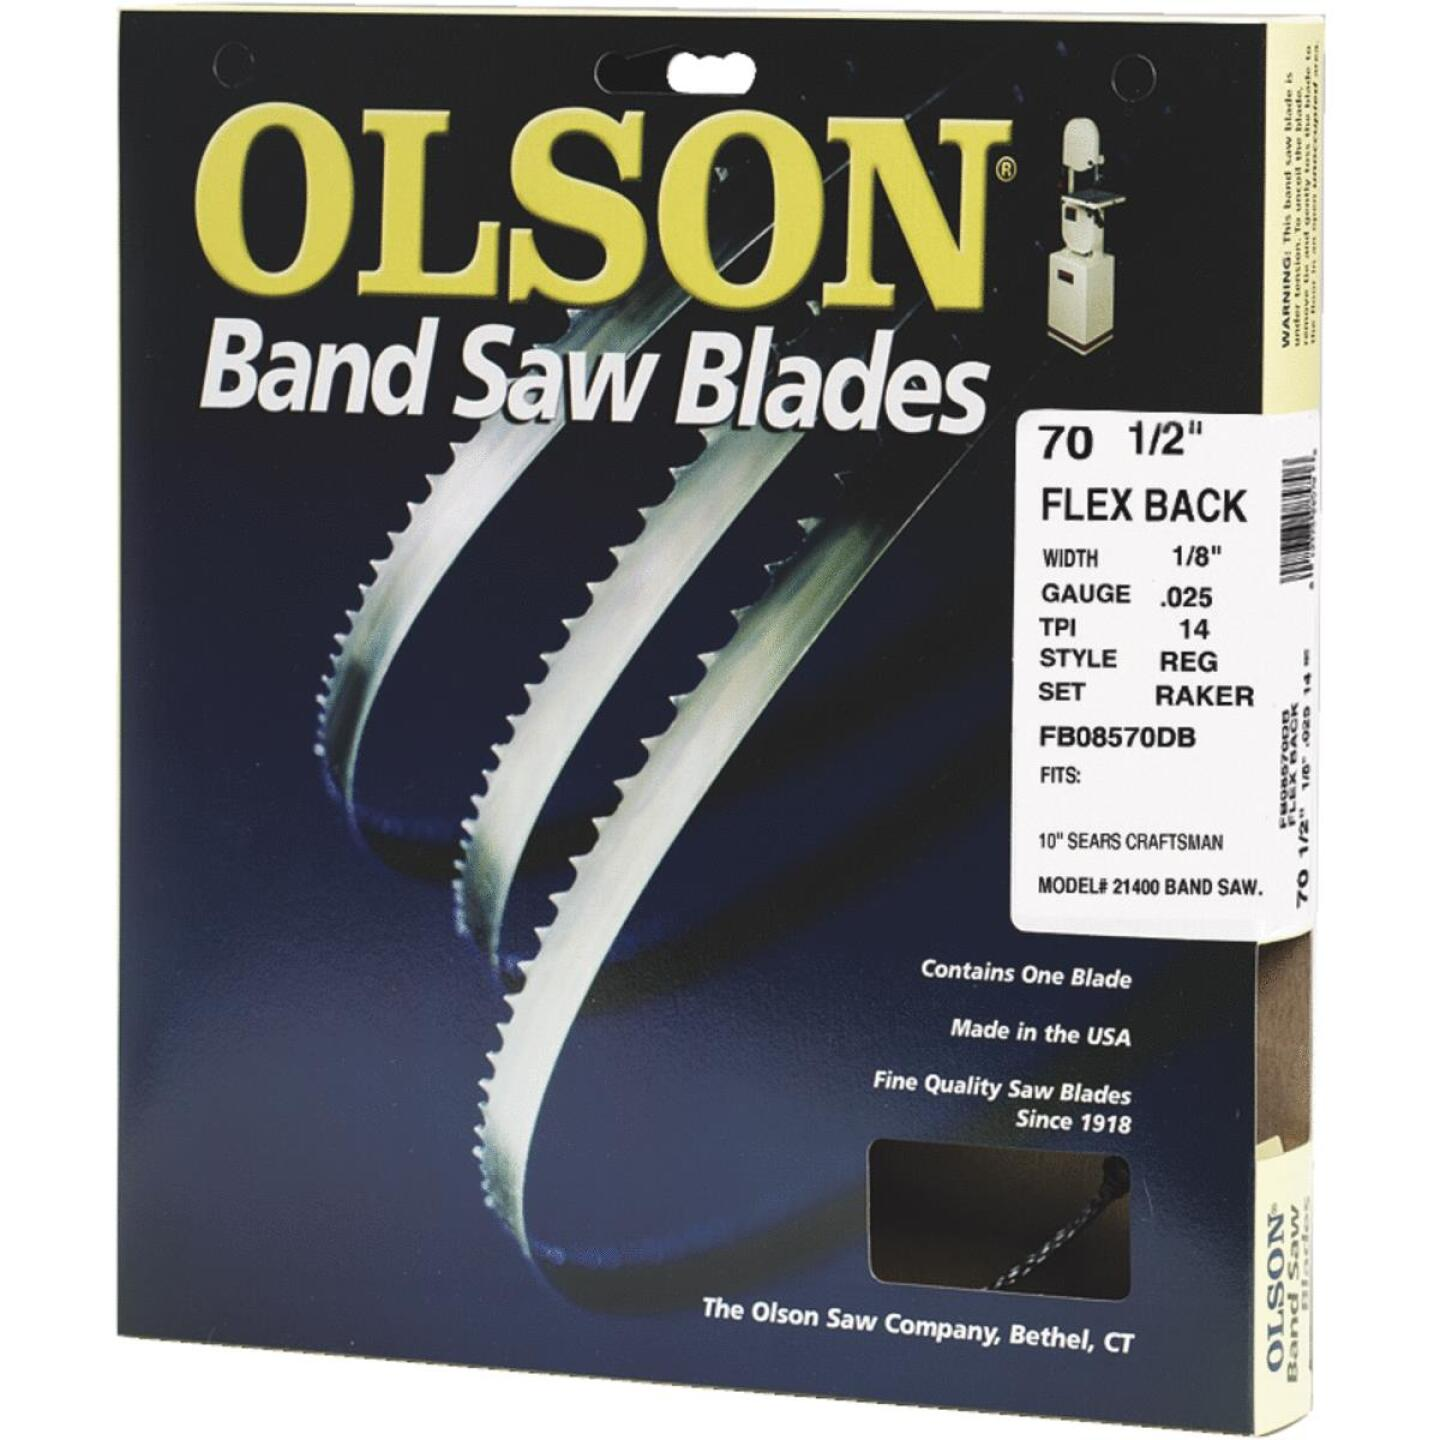 Olson 70-1/2 In. x 1/8 In. 14 TPI Regular Flex Back Band Saw Blade Image 1